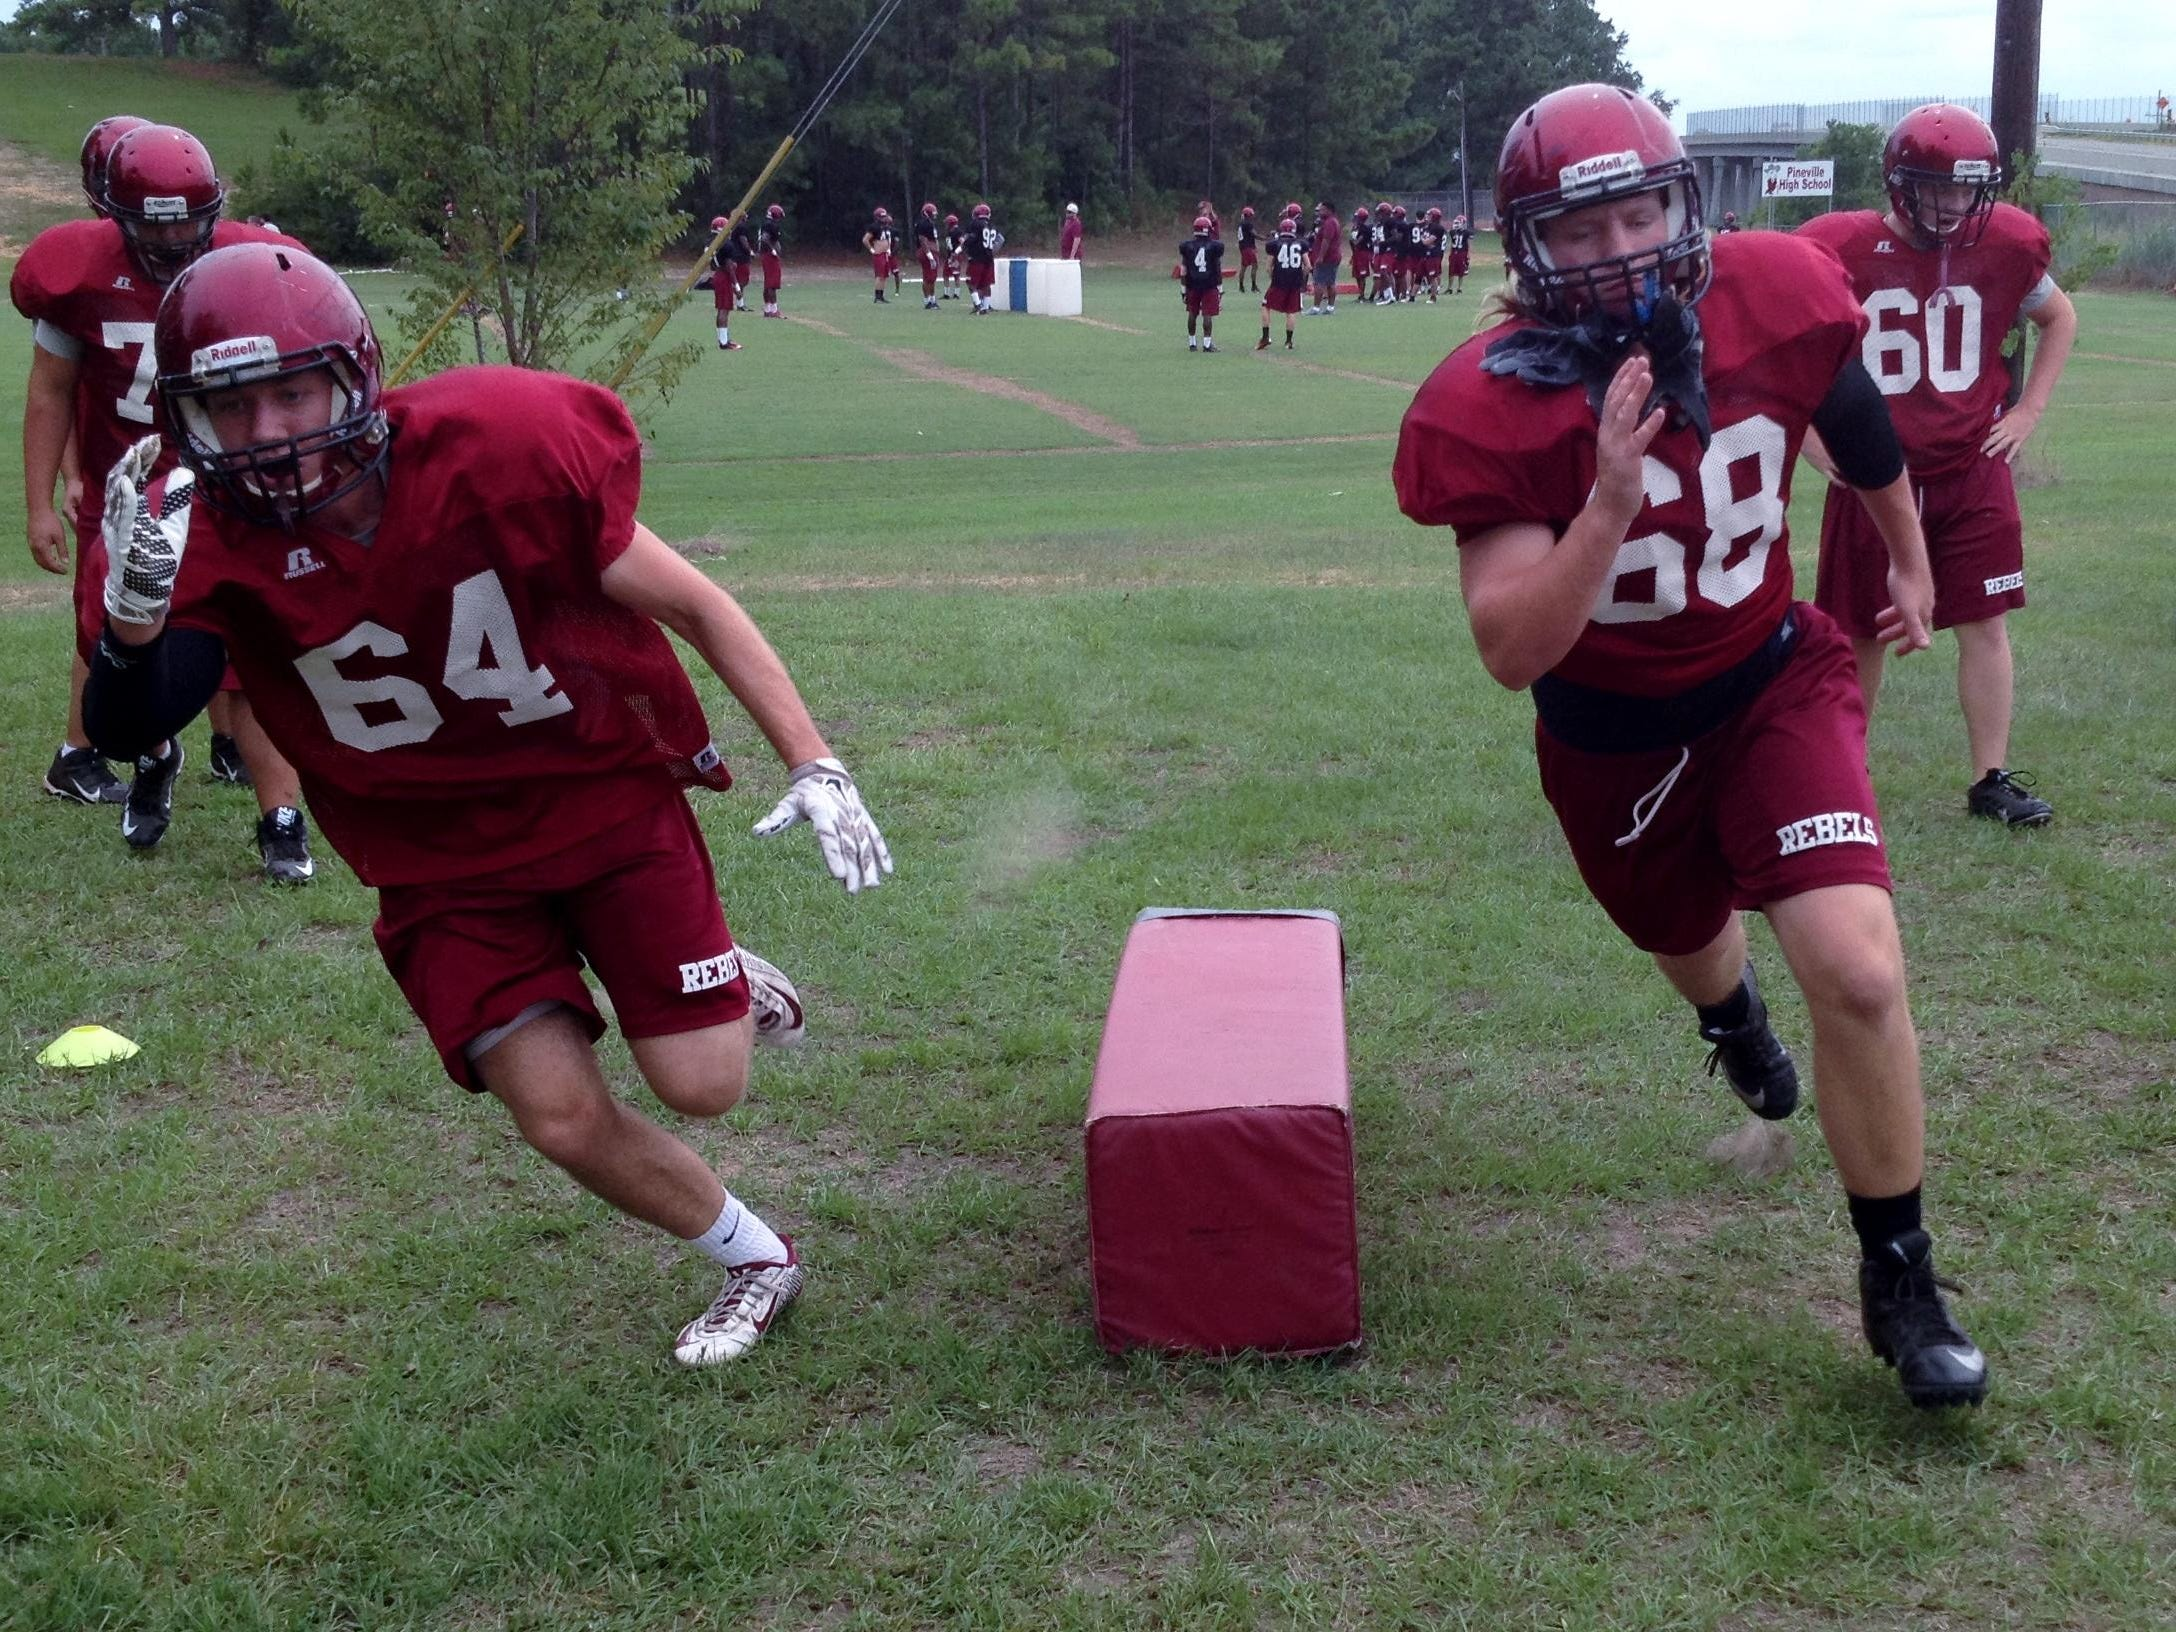 Pineville senior right tackle Harrison Nugent (64) and right guard Dakota Cross (68) run through a drill during practice Tuesday. The undersized Nugent is one of the top academic and most involved students at Pineville High School.